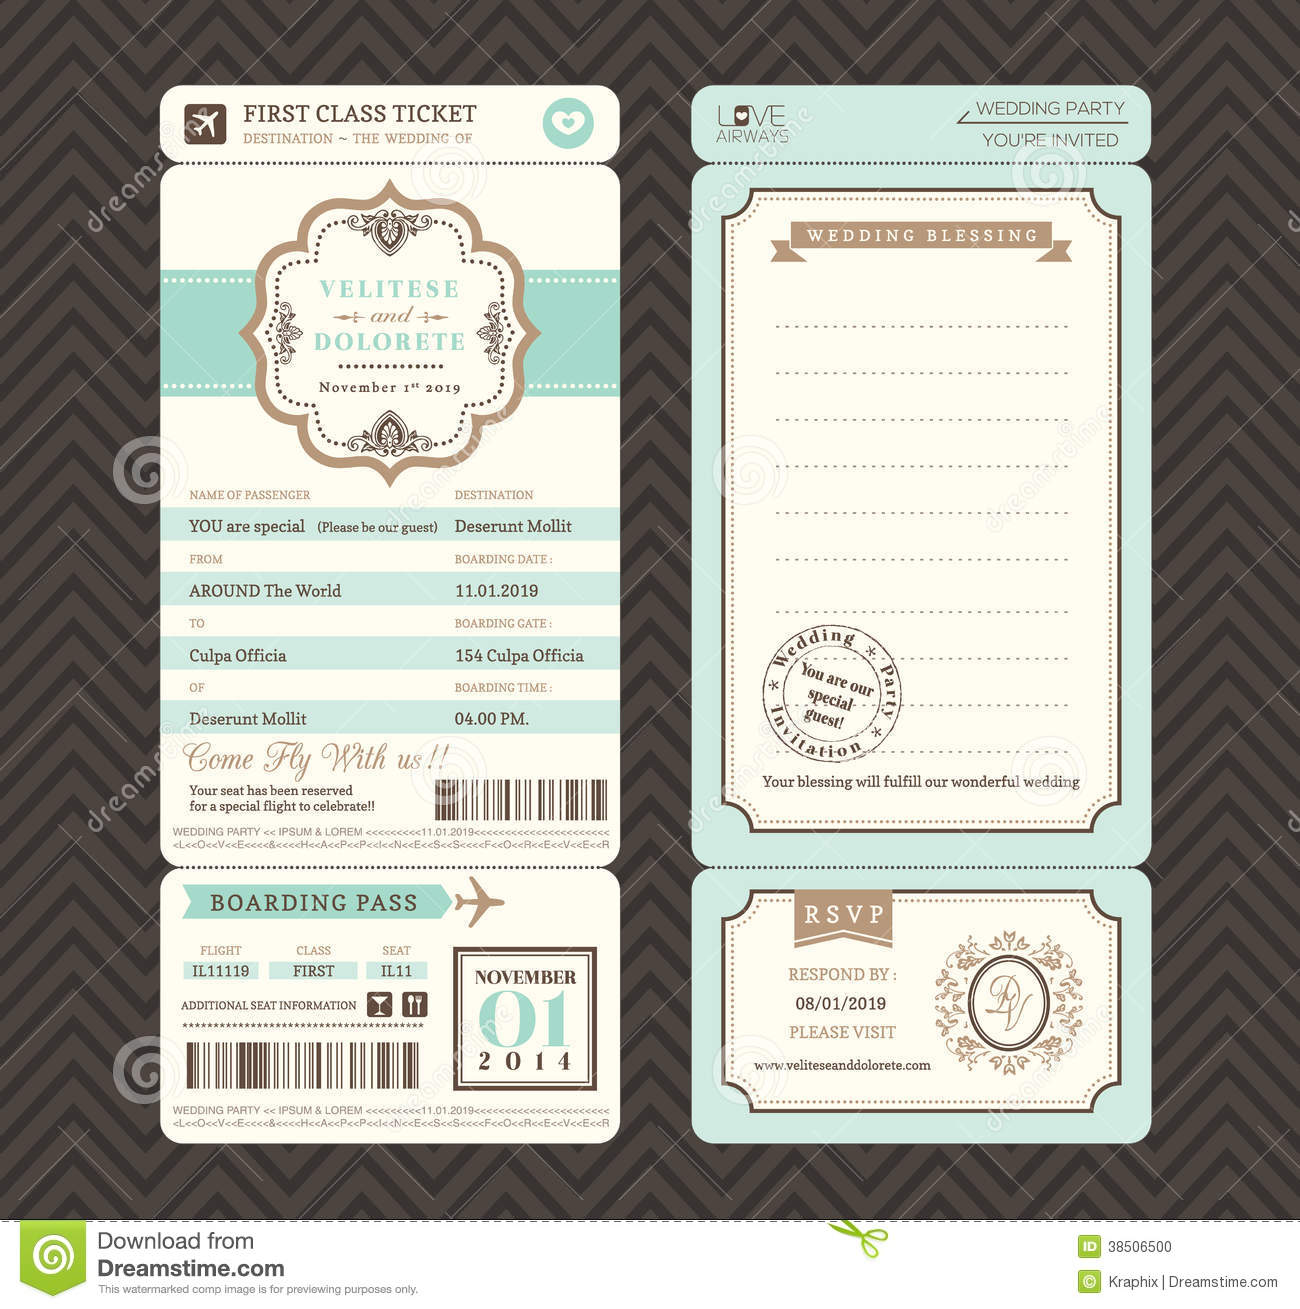 Vintage Style Boarding Pass Ticket Wedding Invitation Template Stock - Wedding invitation templates: boarding pass wedding invitation template